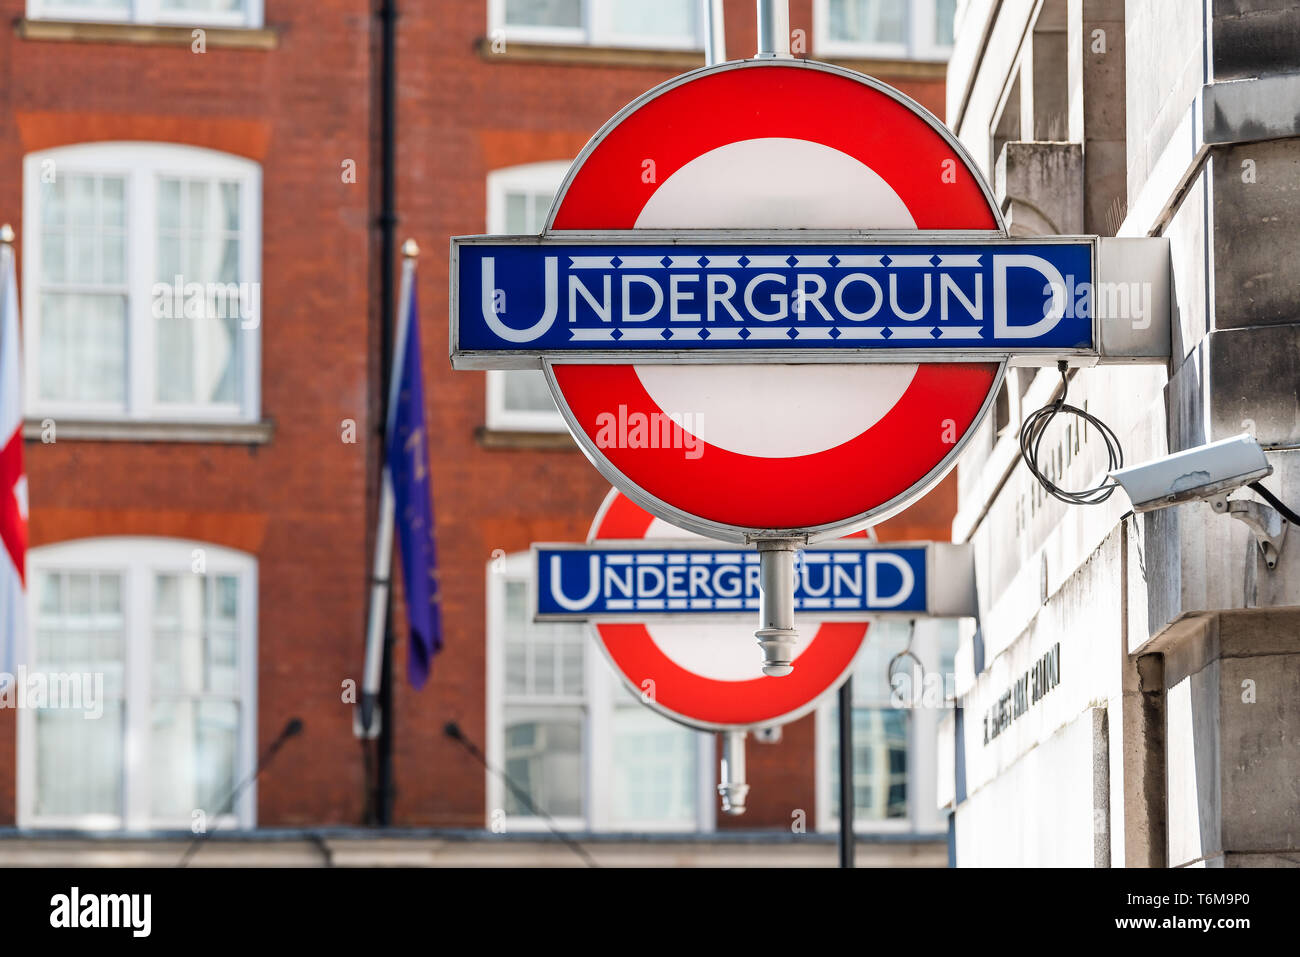 London, UK - June 22, 2018: Closeup of Underground tube metro blue and red signs on street road with flags and logo - Stock Image